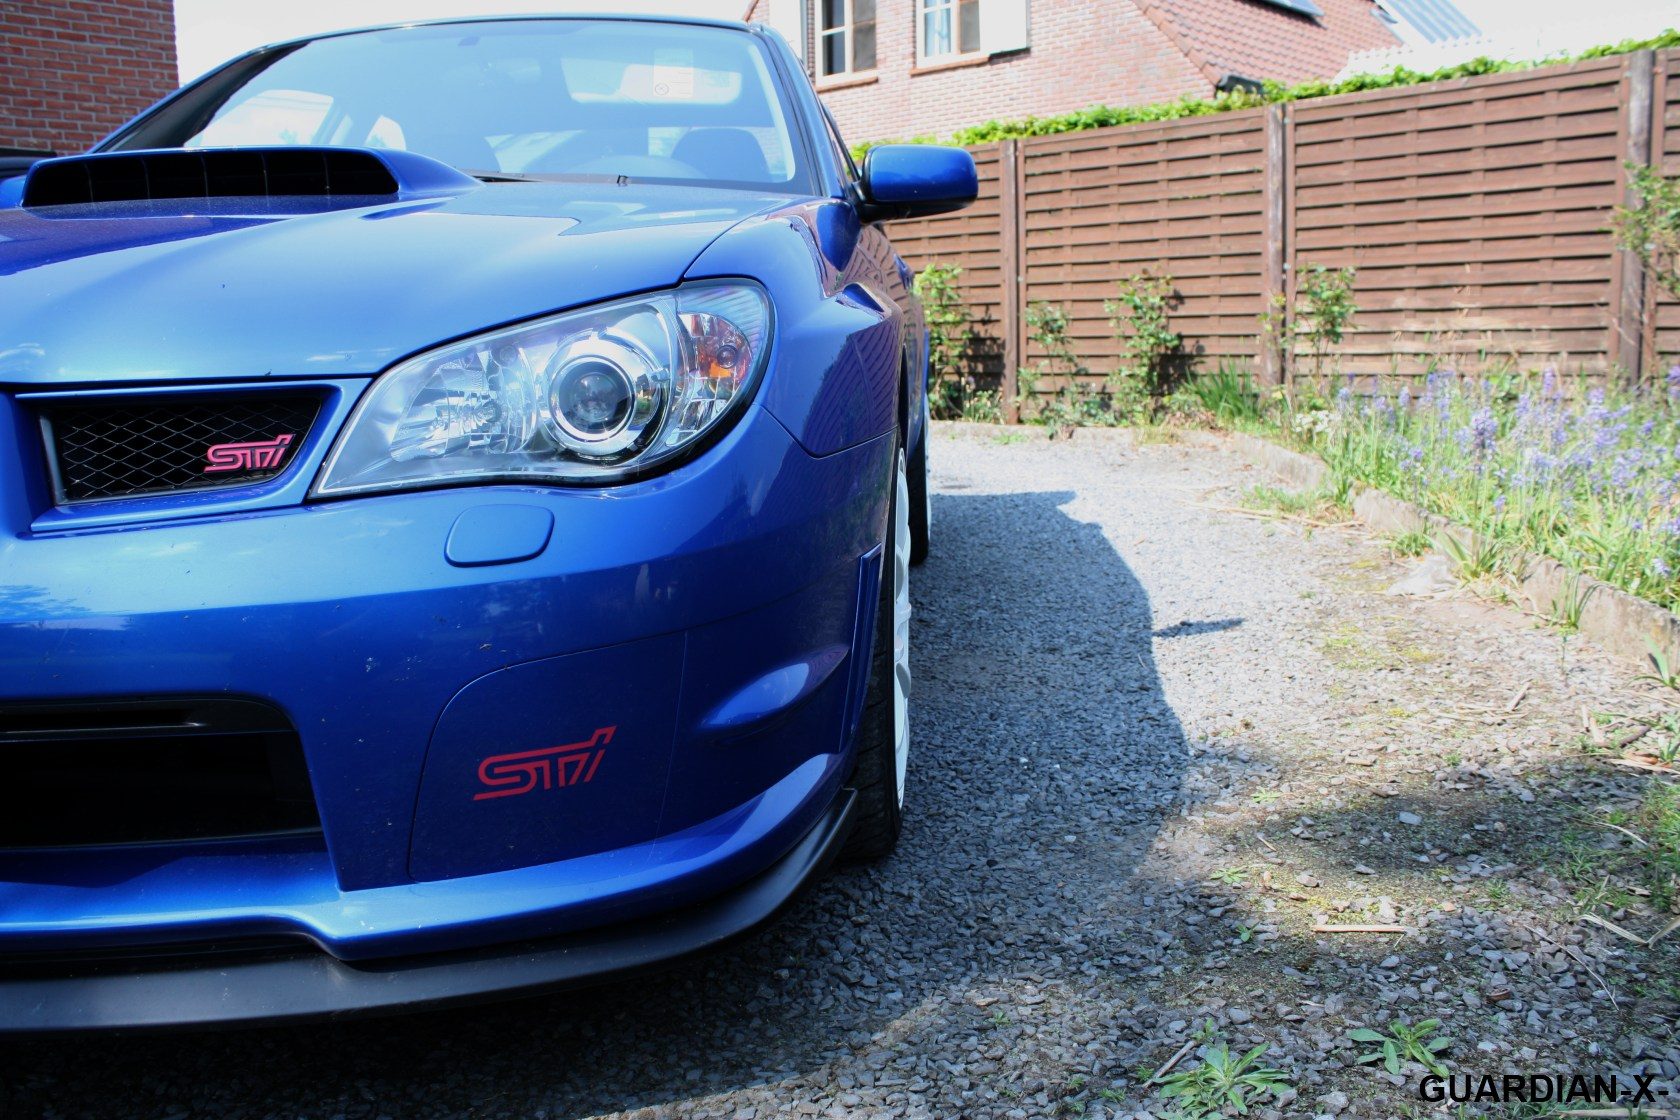 Guardian-X-'s 06' STi Still in the shed though not parted way's yet-gforce2-jpg